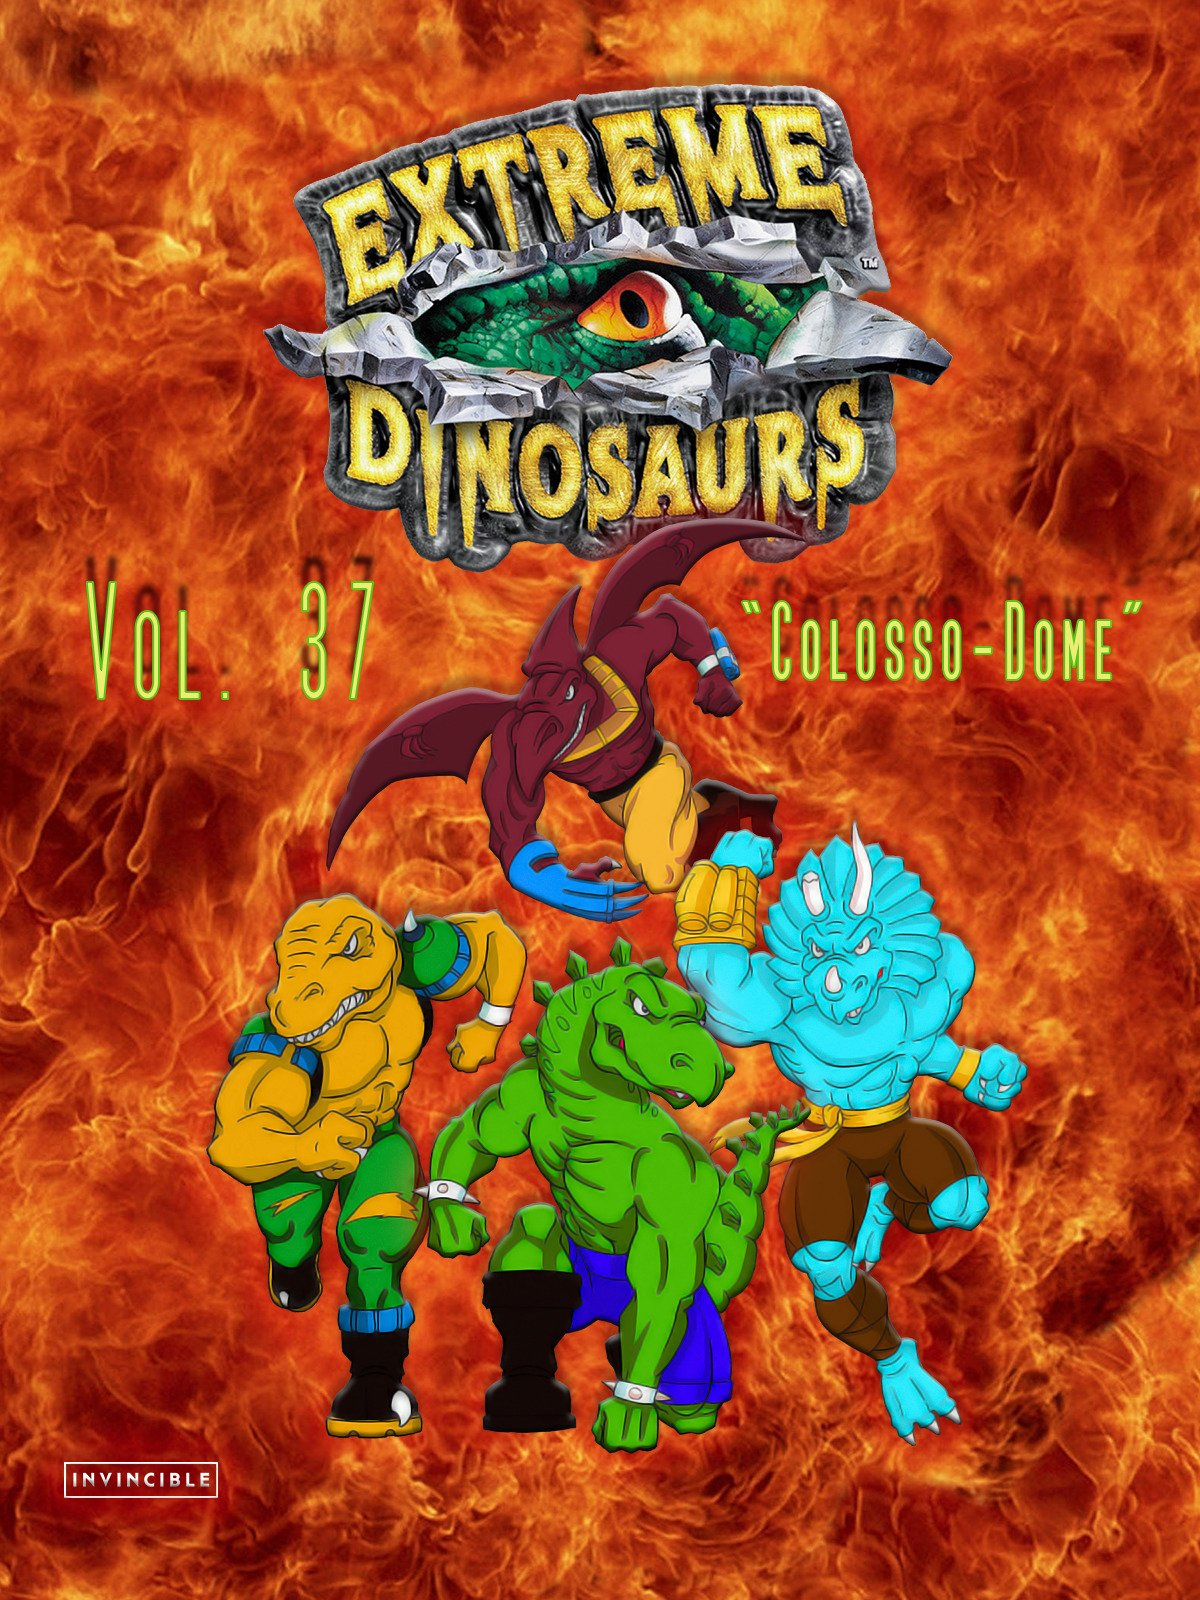 Extreme Dinosaurs Vol. 37Colosso-Dome